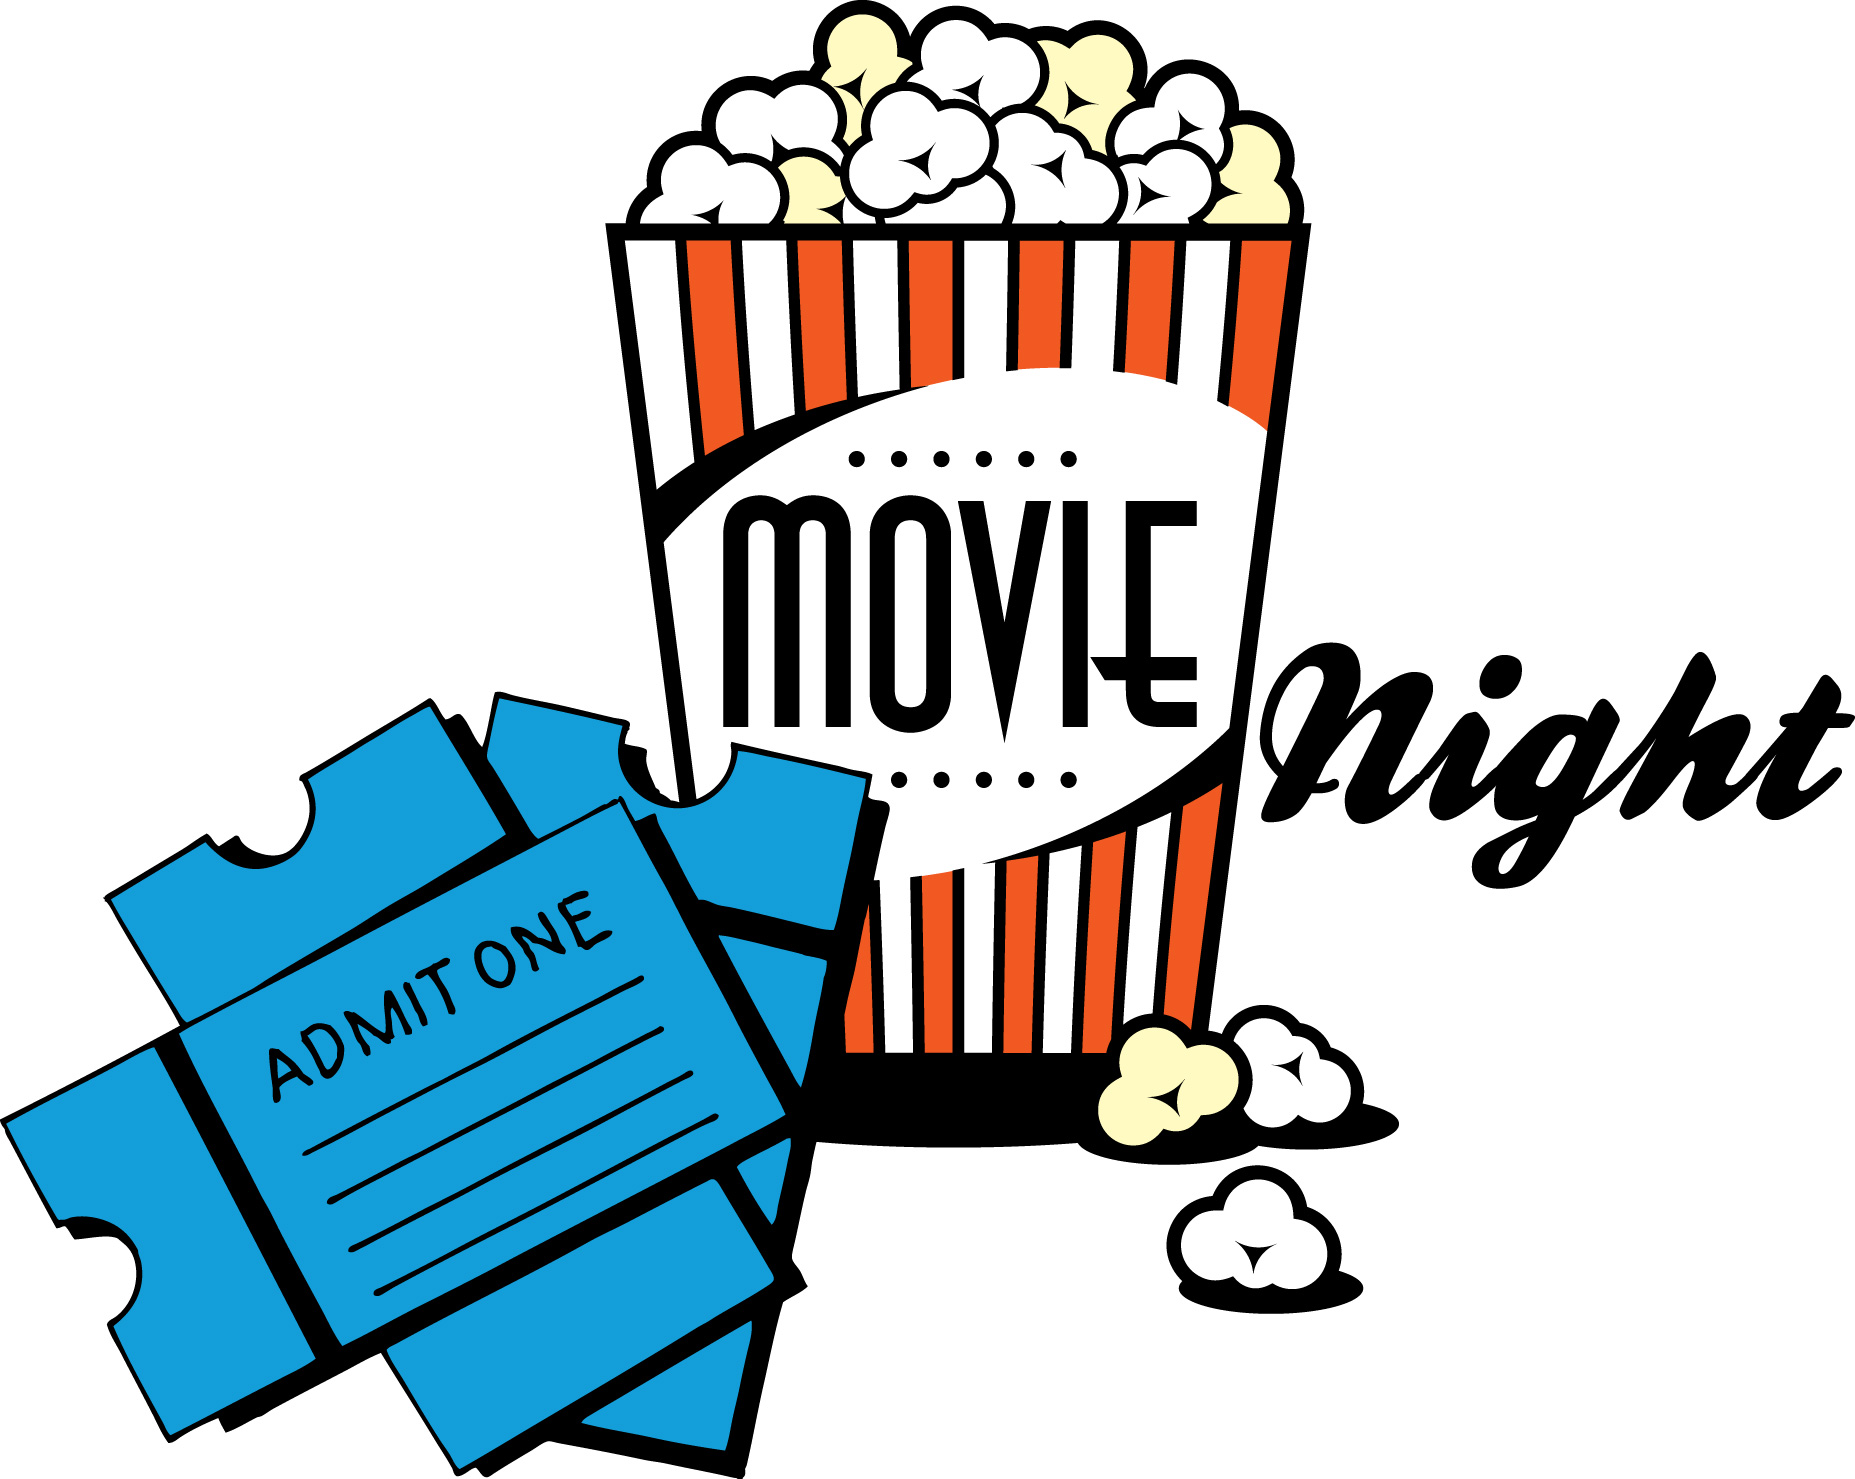 Going to see a movie? Check out these sites before you go!